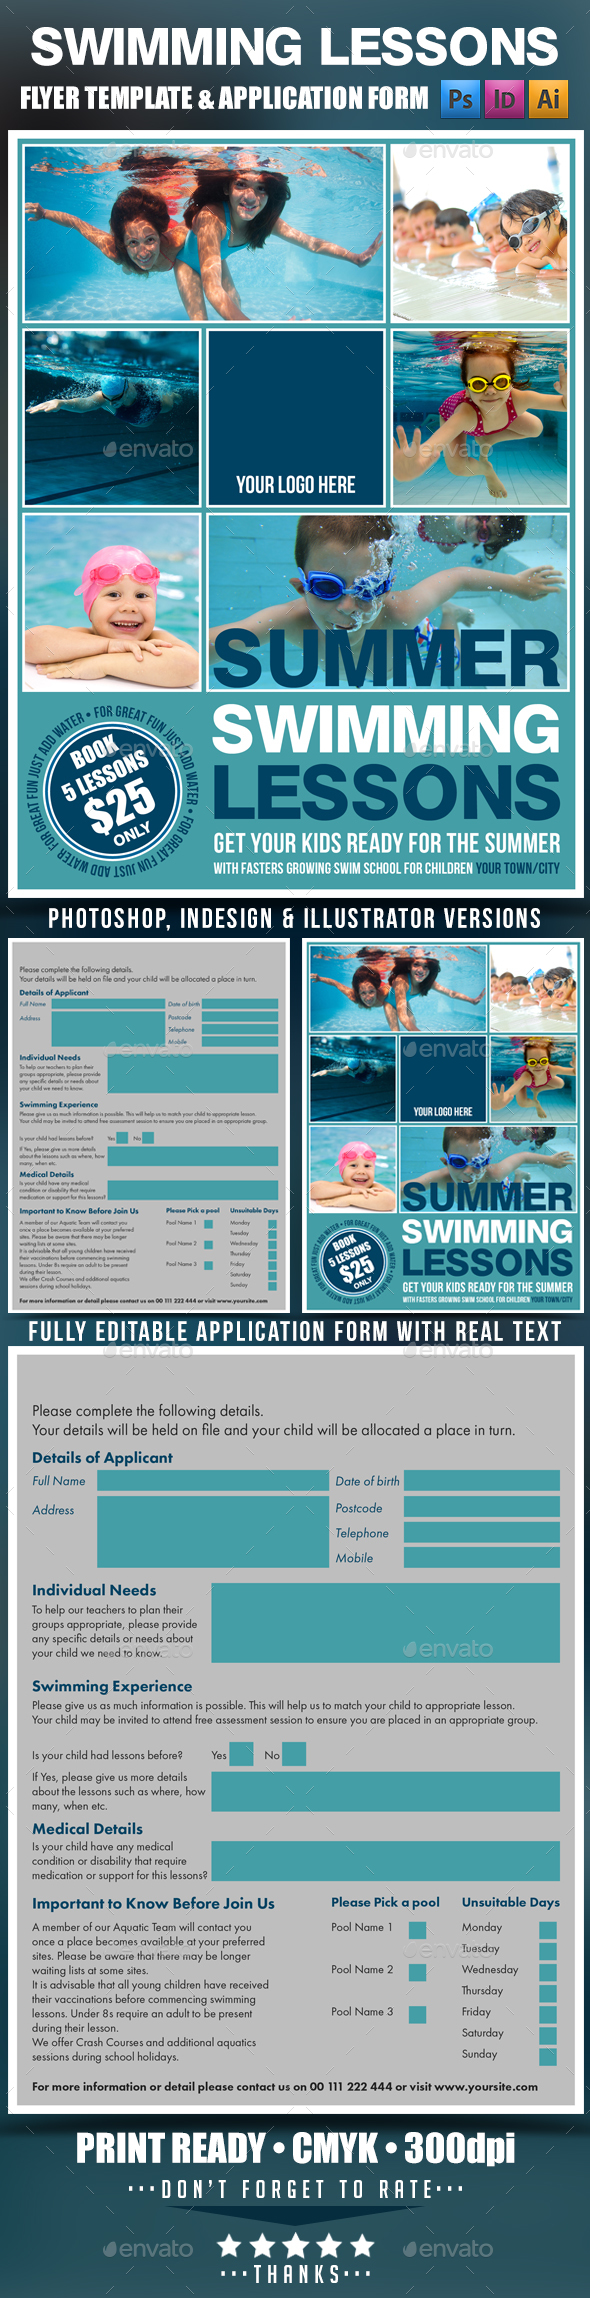 Summer Swimming Lessons Flyer Template